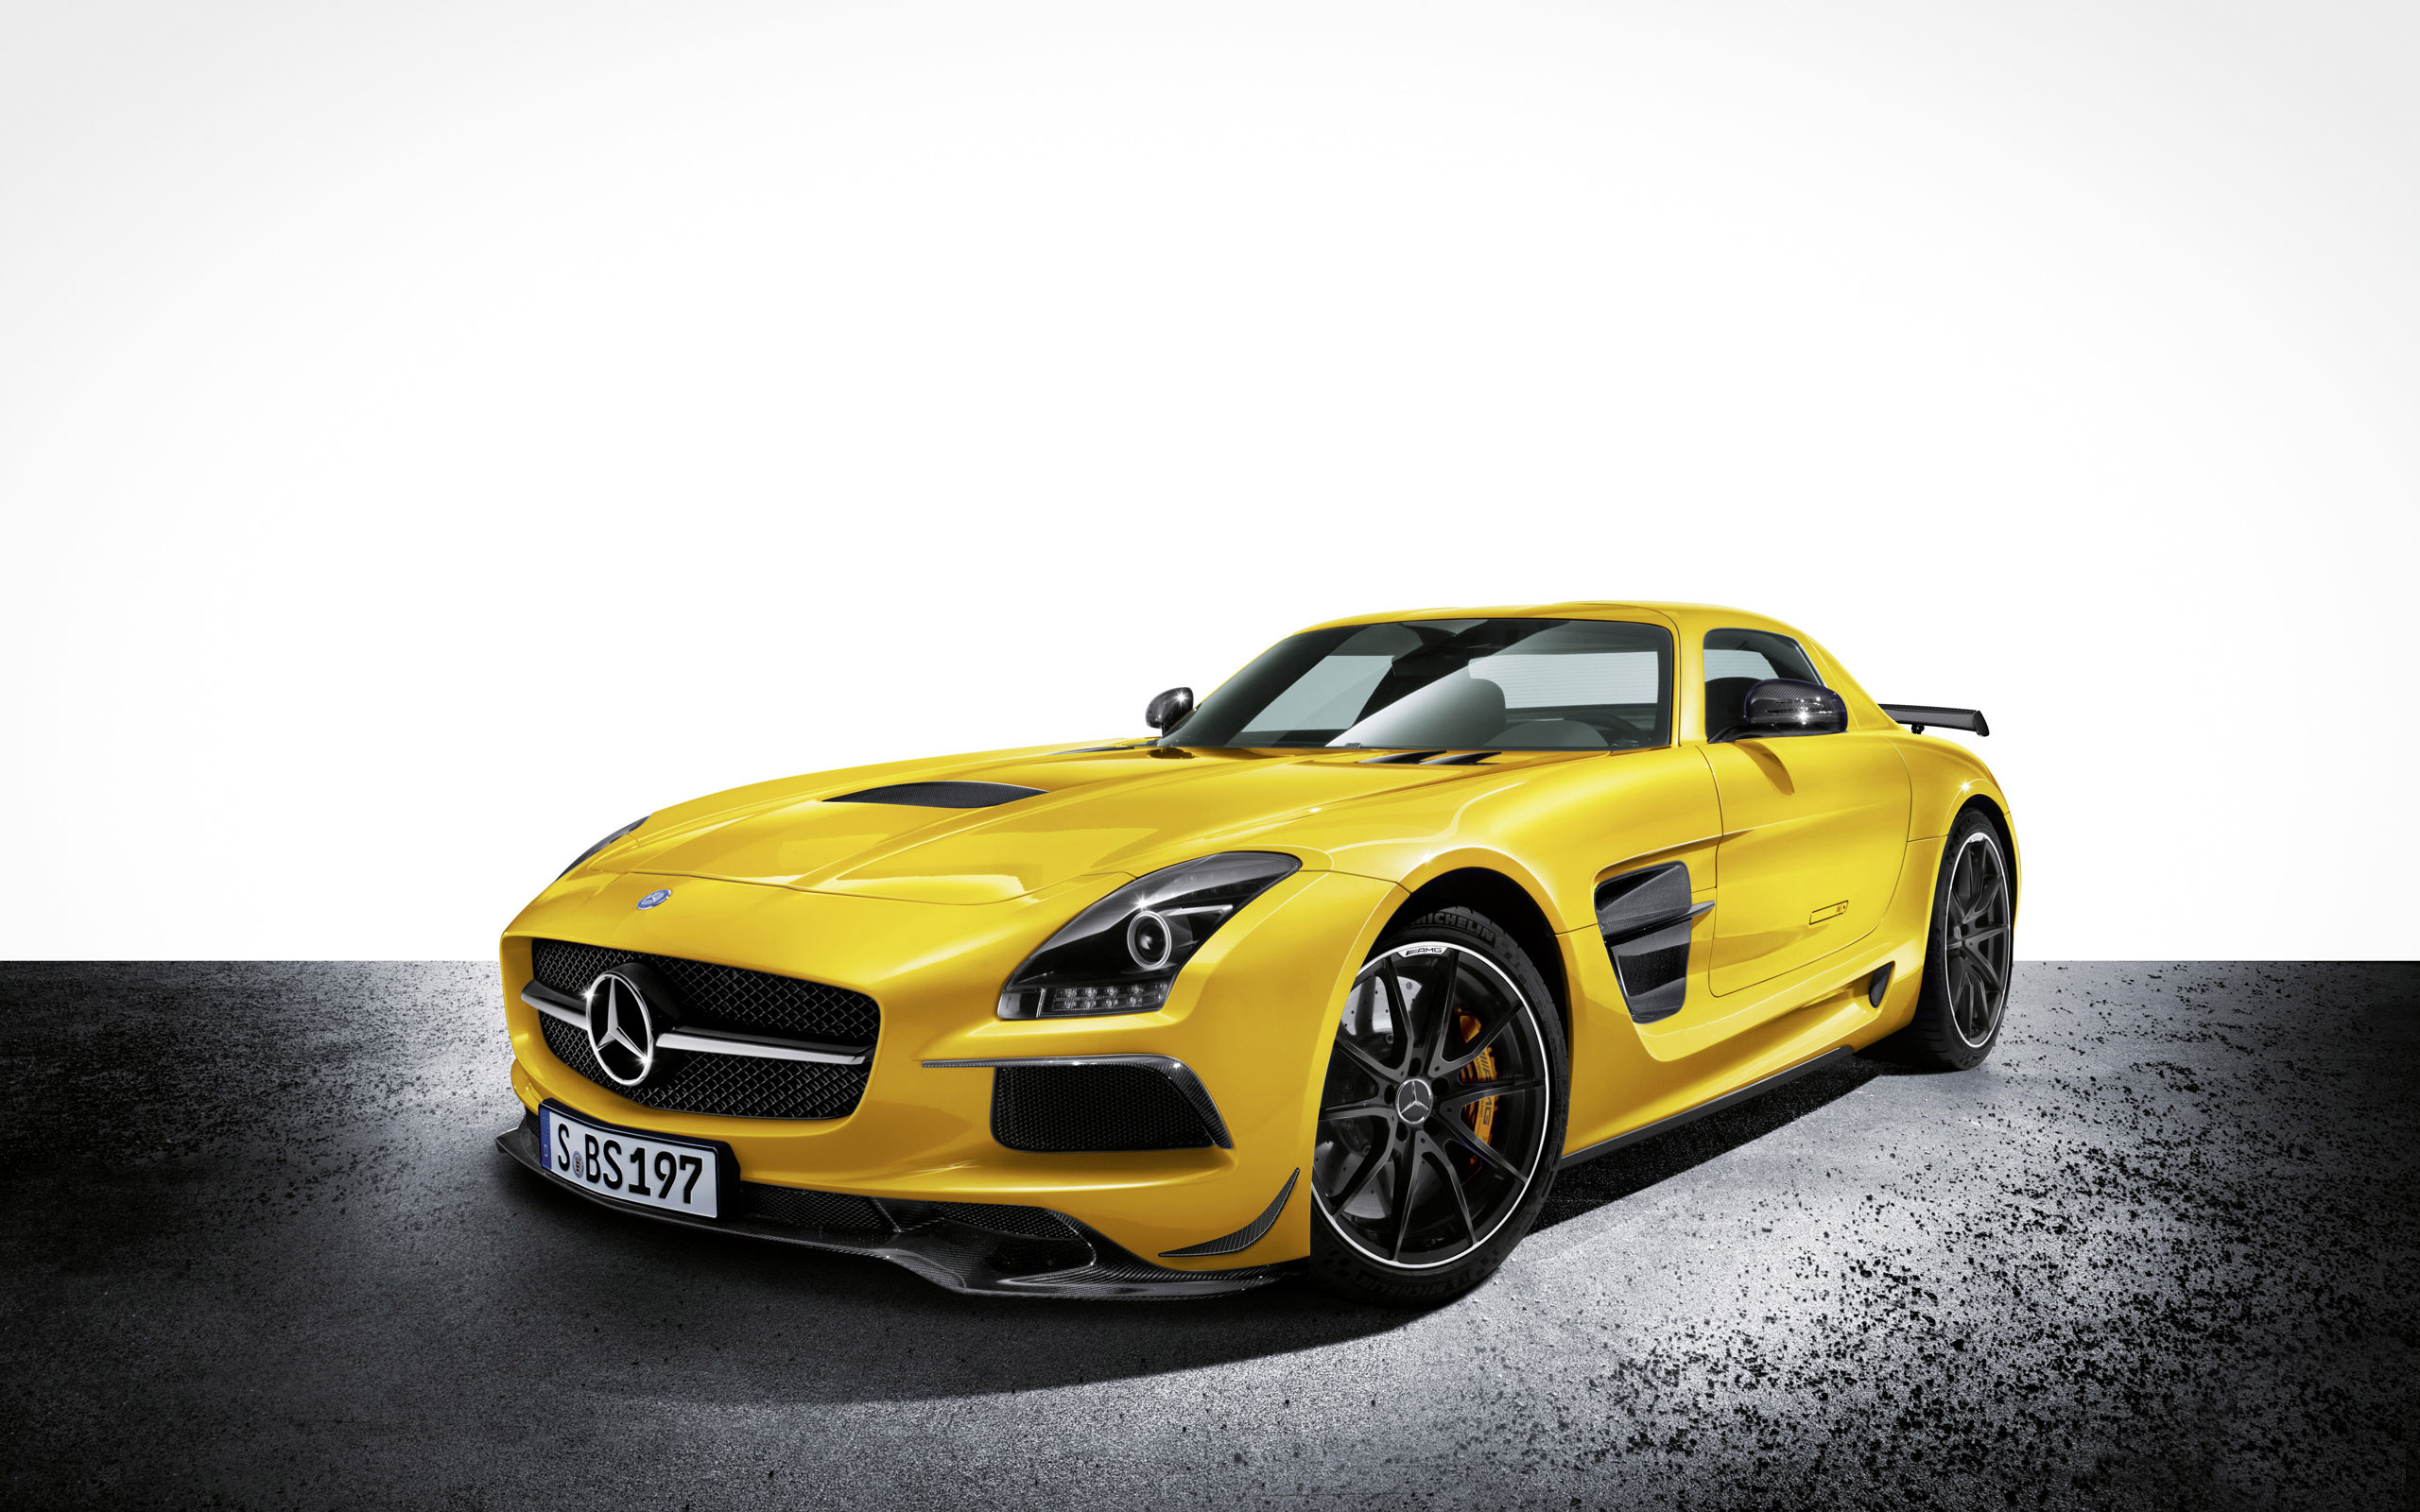 2014 Mercedes Benz SLS AMG Black Series Wallpaper HD Car Wallpapers 2560x1600